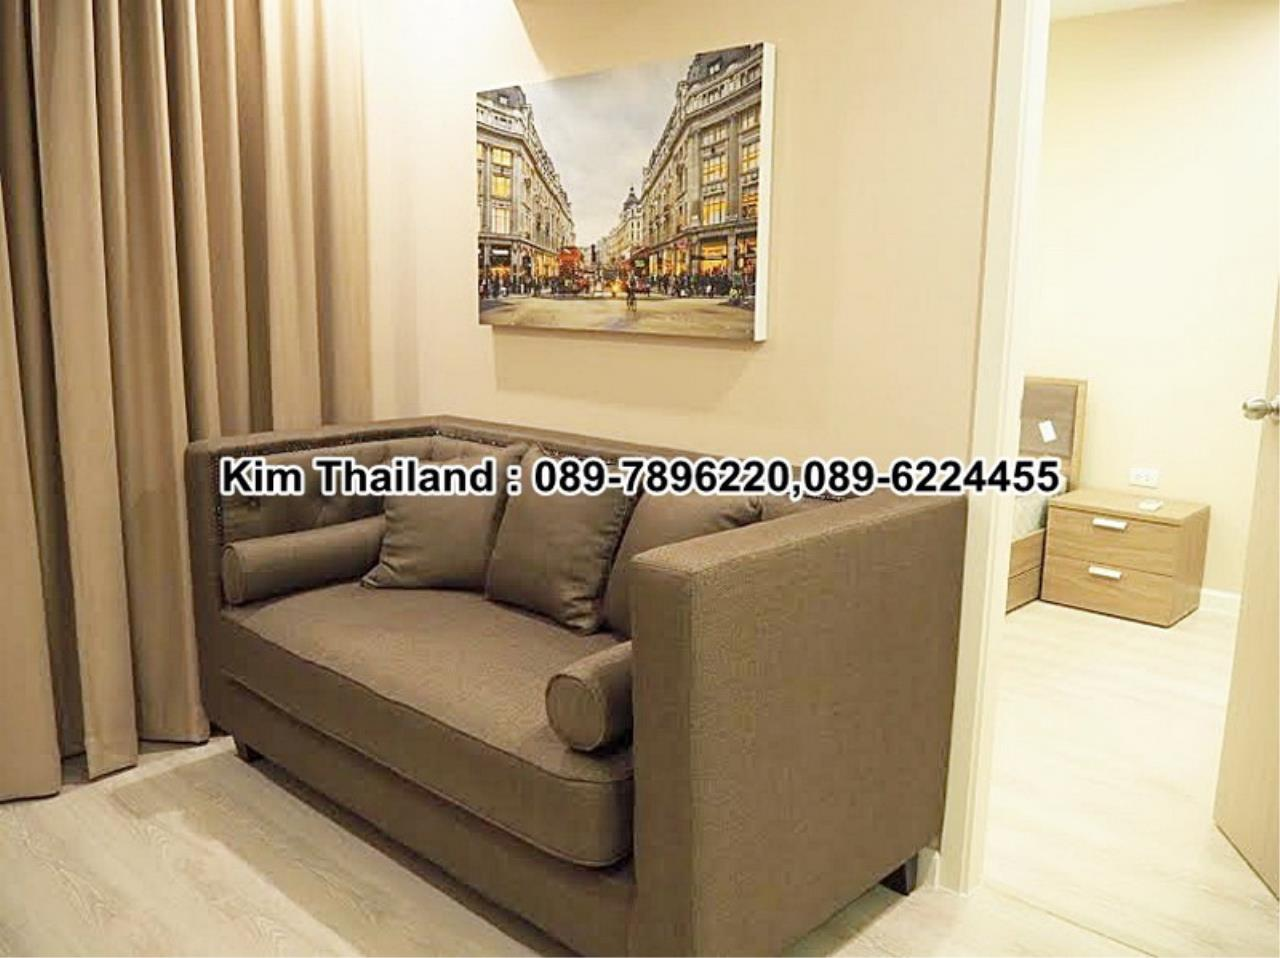 BKKcondorental Agency's For rent, Condo Metroluxe Rama 4., Area 28 sq.m. 1 bedroom. Rental 15,000 THB per month. 3